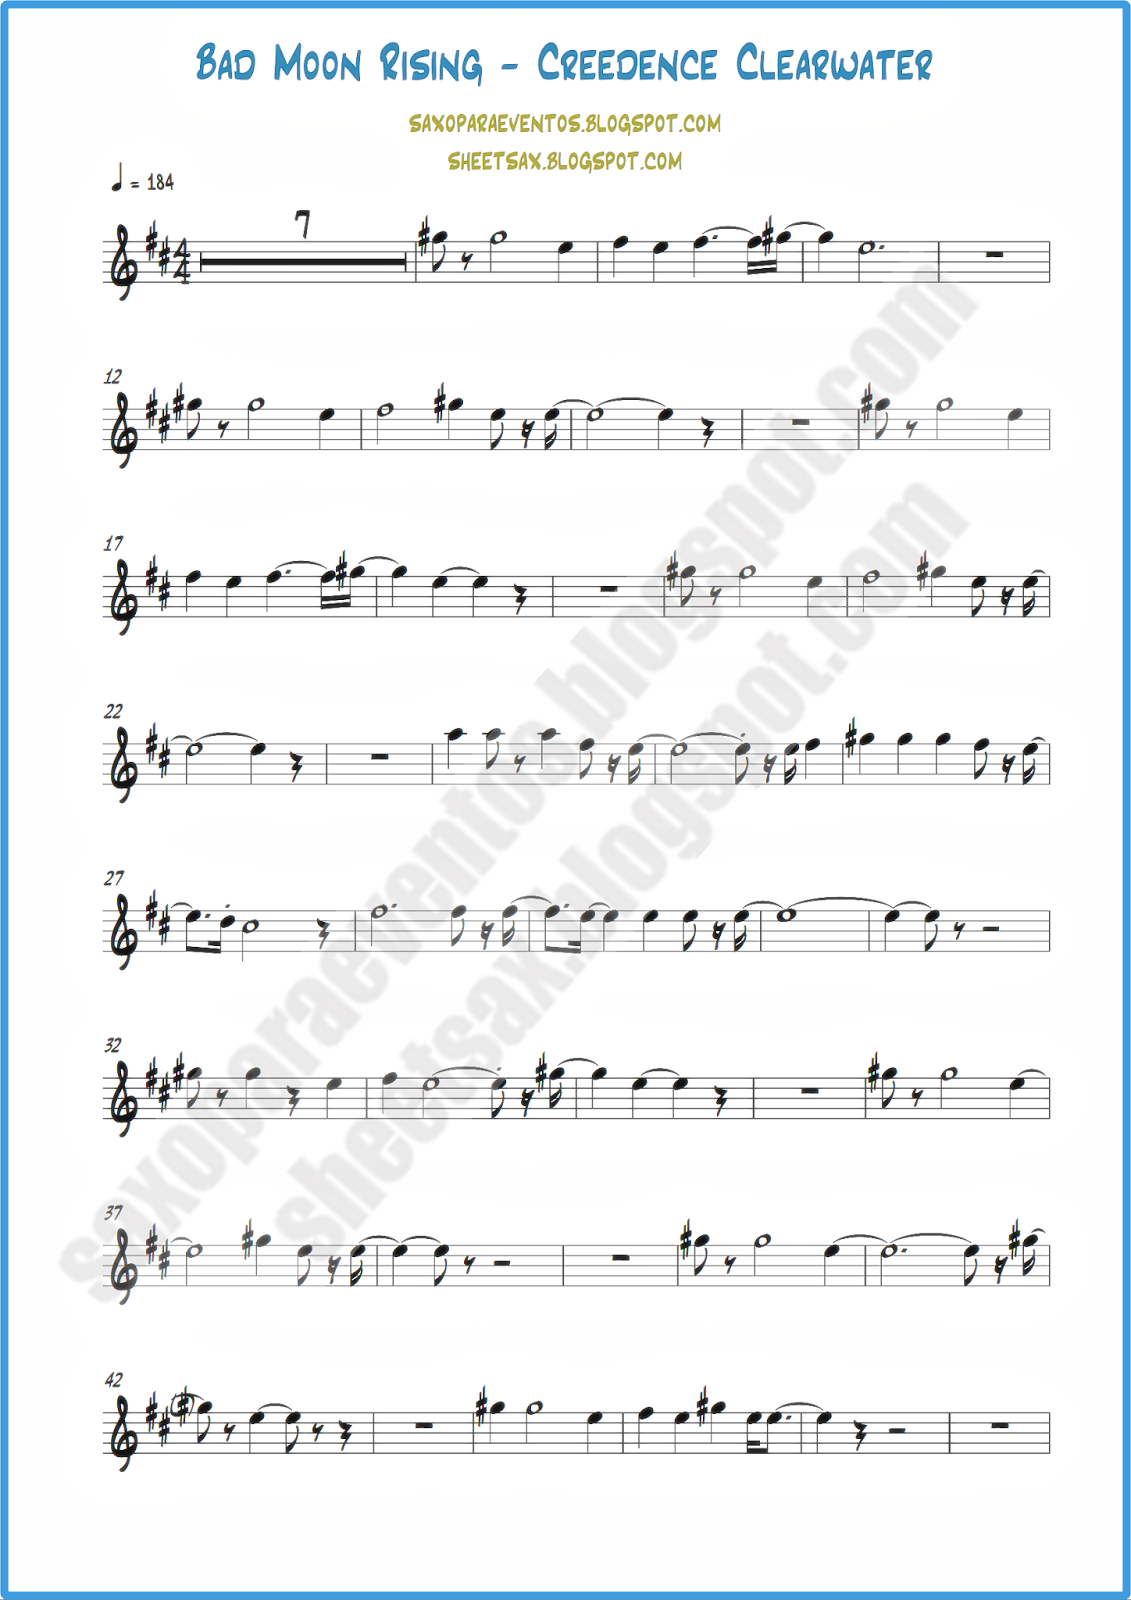 Sheet music and playlong of Bad Moon Rising by Creedence | Free